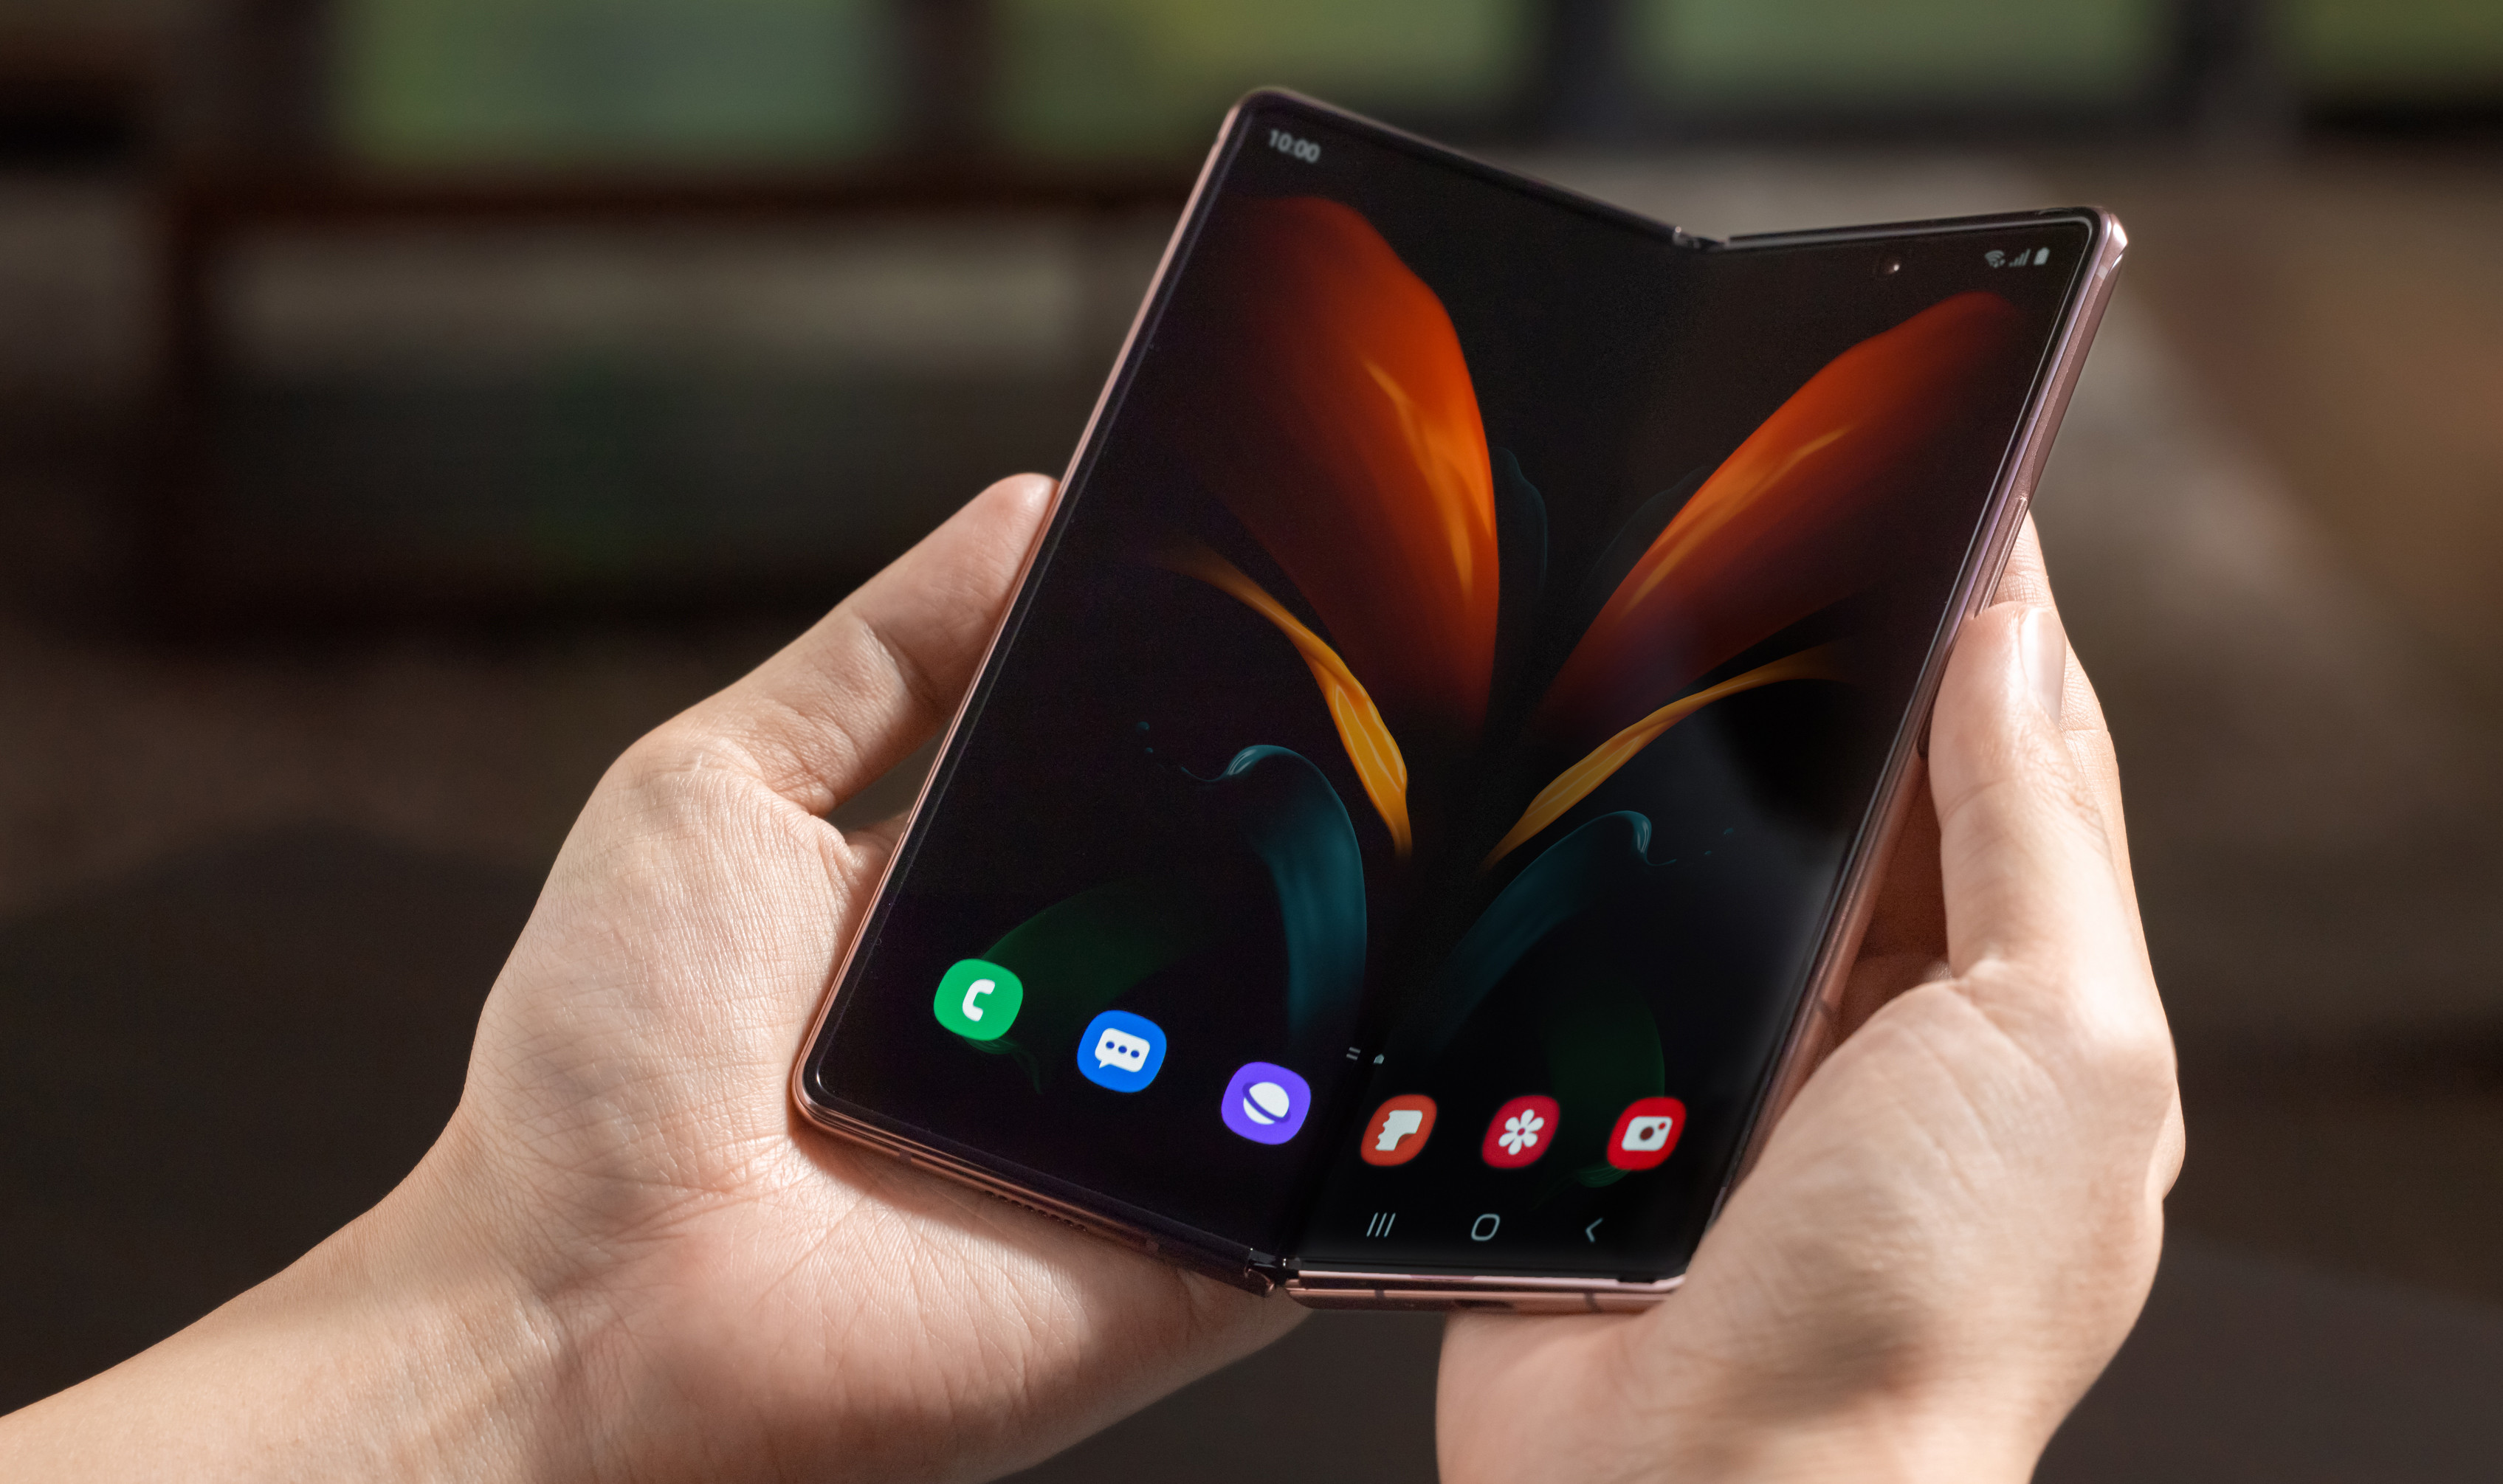 Google Pixel Fold could challenge Samsung Galaxy Z Fold 3 later this year | Tom's Guide